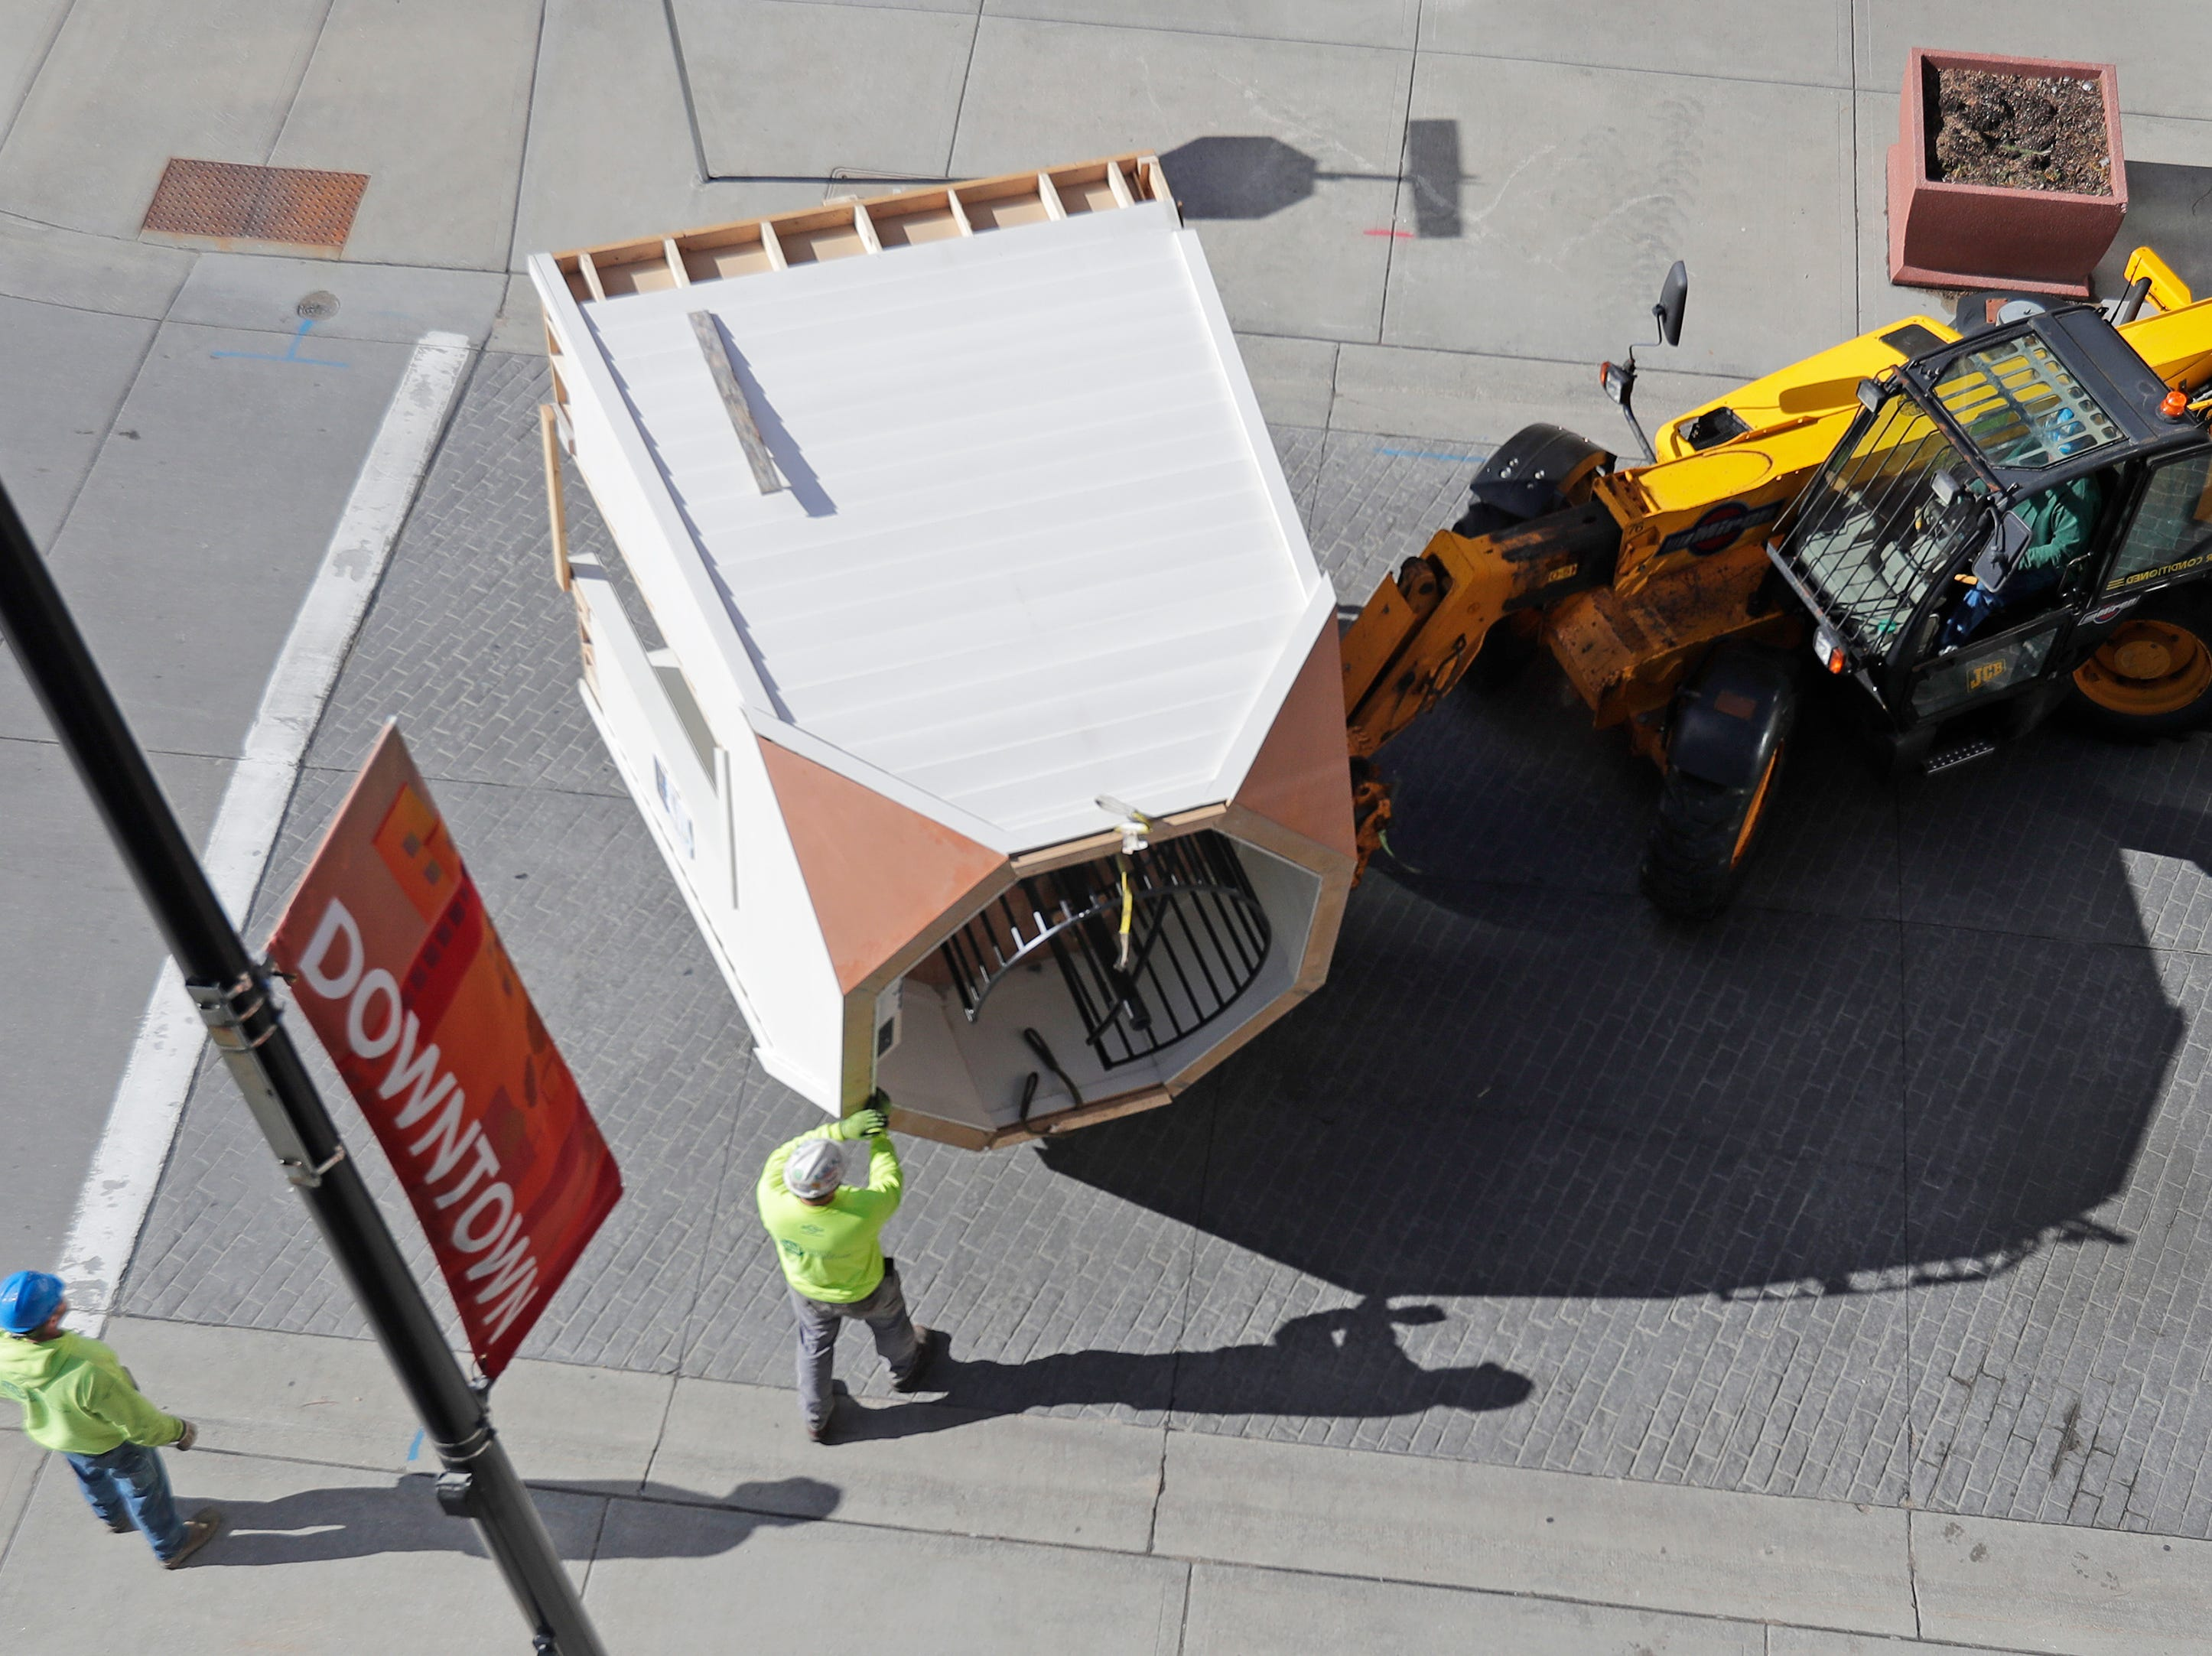 Workers move the lighthouse exhibit out of the Children's Museum of Green Bay on Tuesday, April 23, 2019 in Green Bay, Wis. The museum is moving from its downtown location and will reopen in its new facility near Bay Beach Amusement Park in early May.